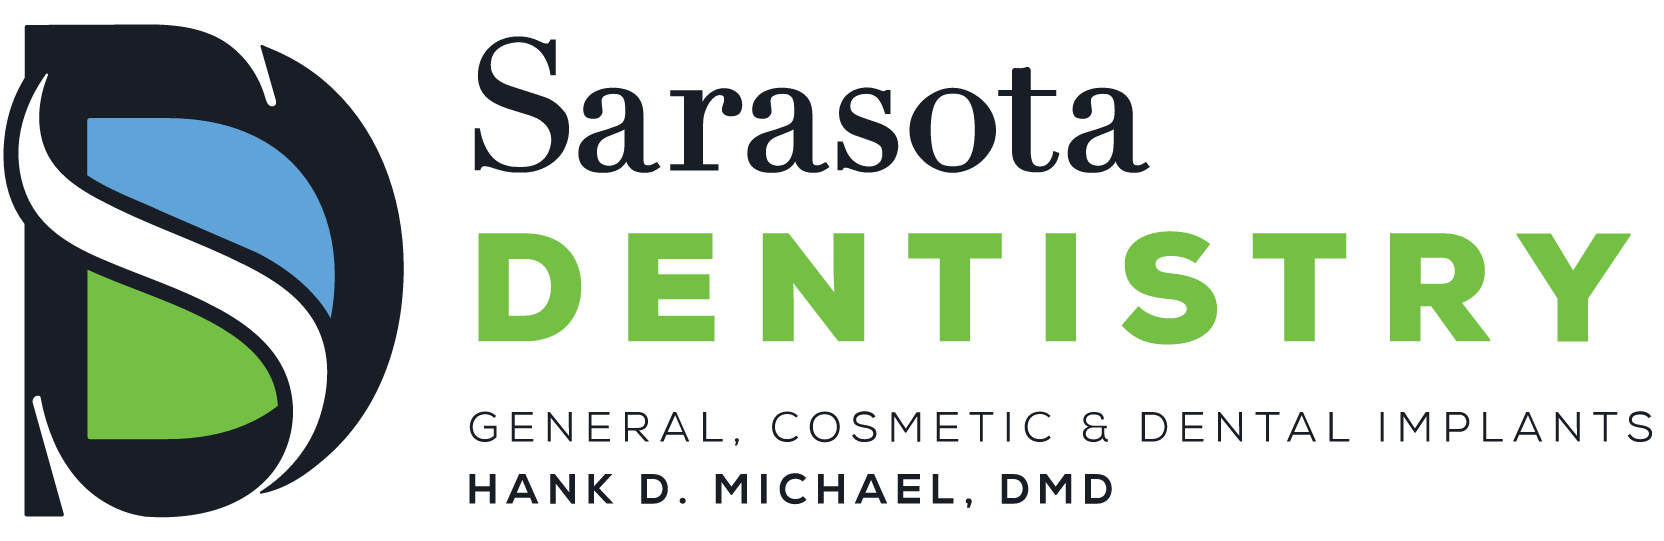 sarasota dentistry launches 1 500 dental scholarship essay sarasota dentistry logo